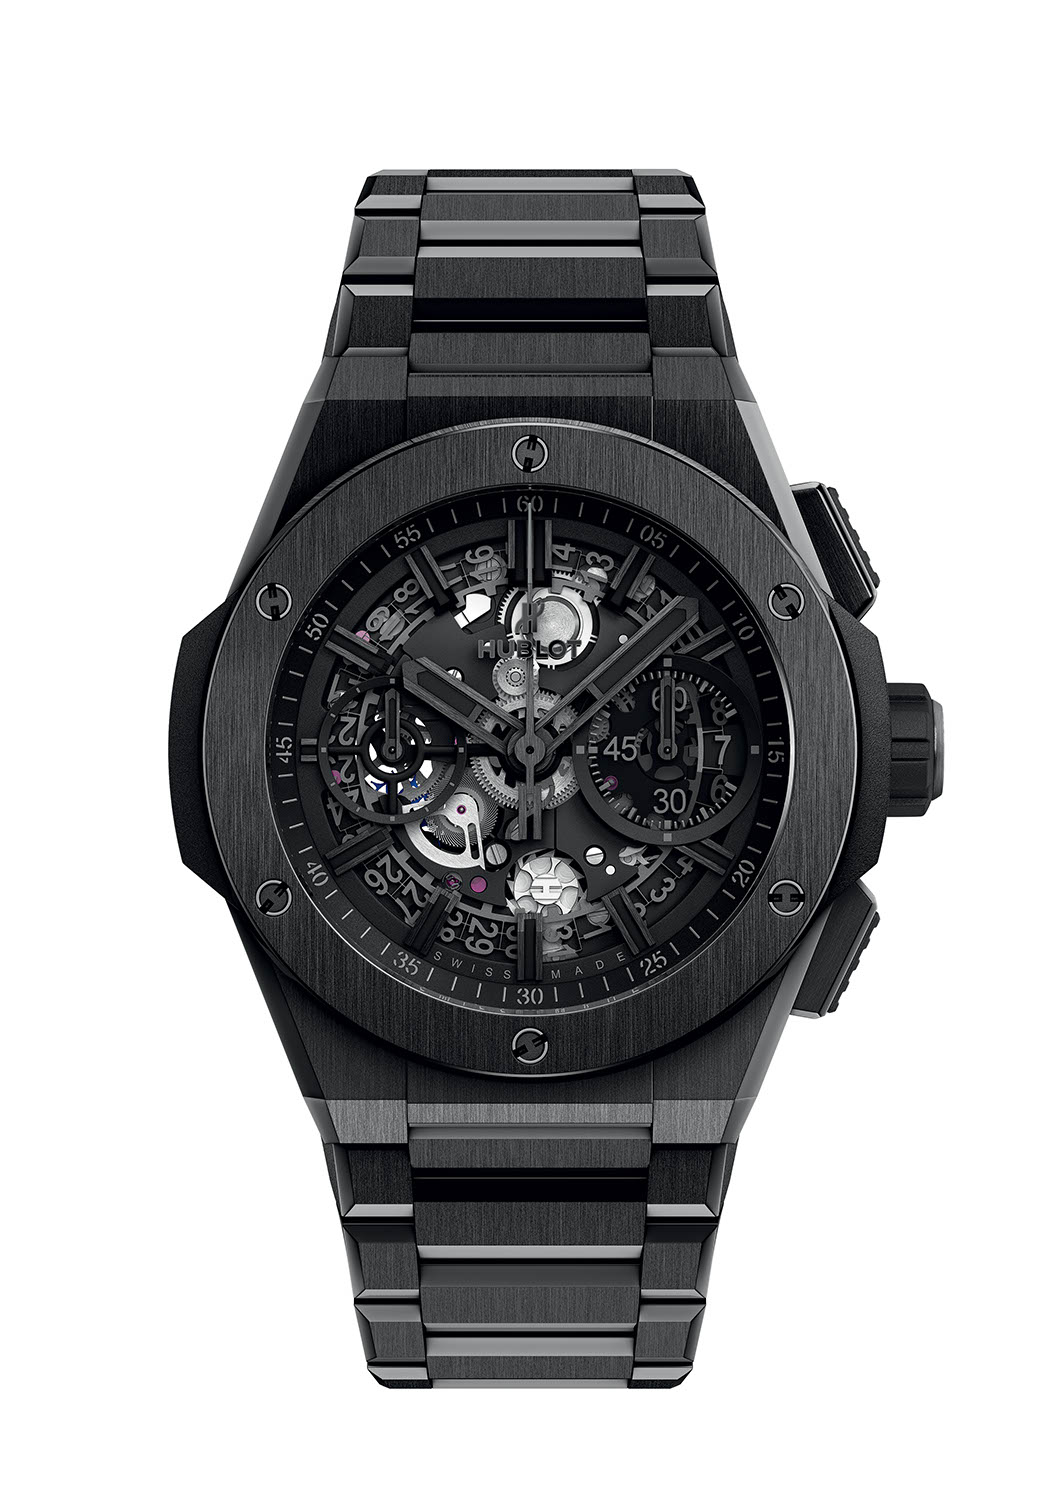 Hublot Big Bang Integral All Black in satin-finished and polished ceramic